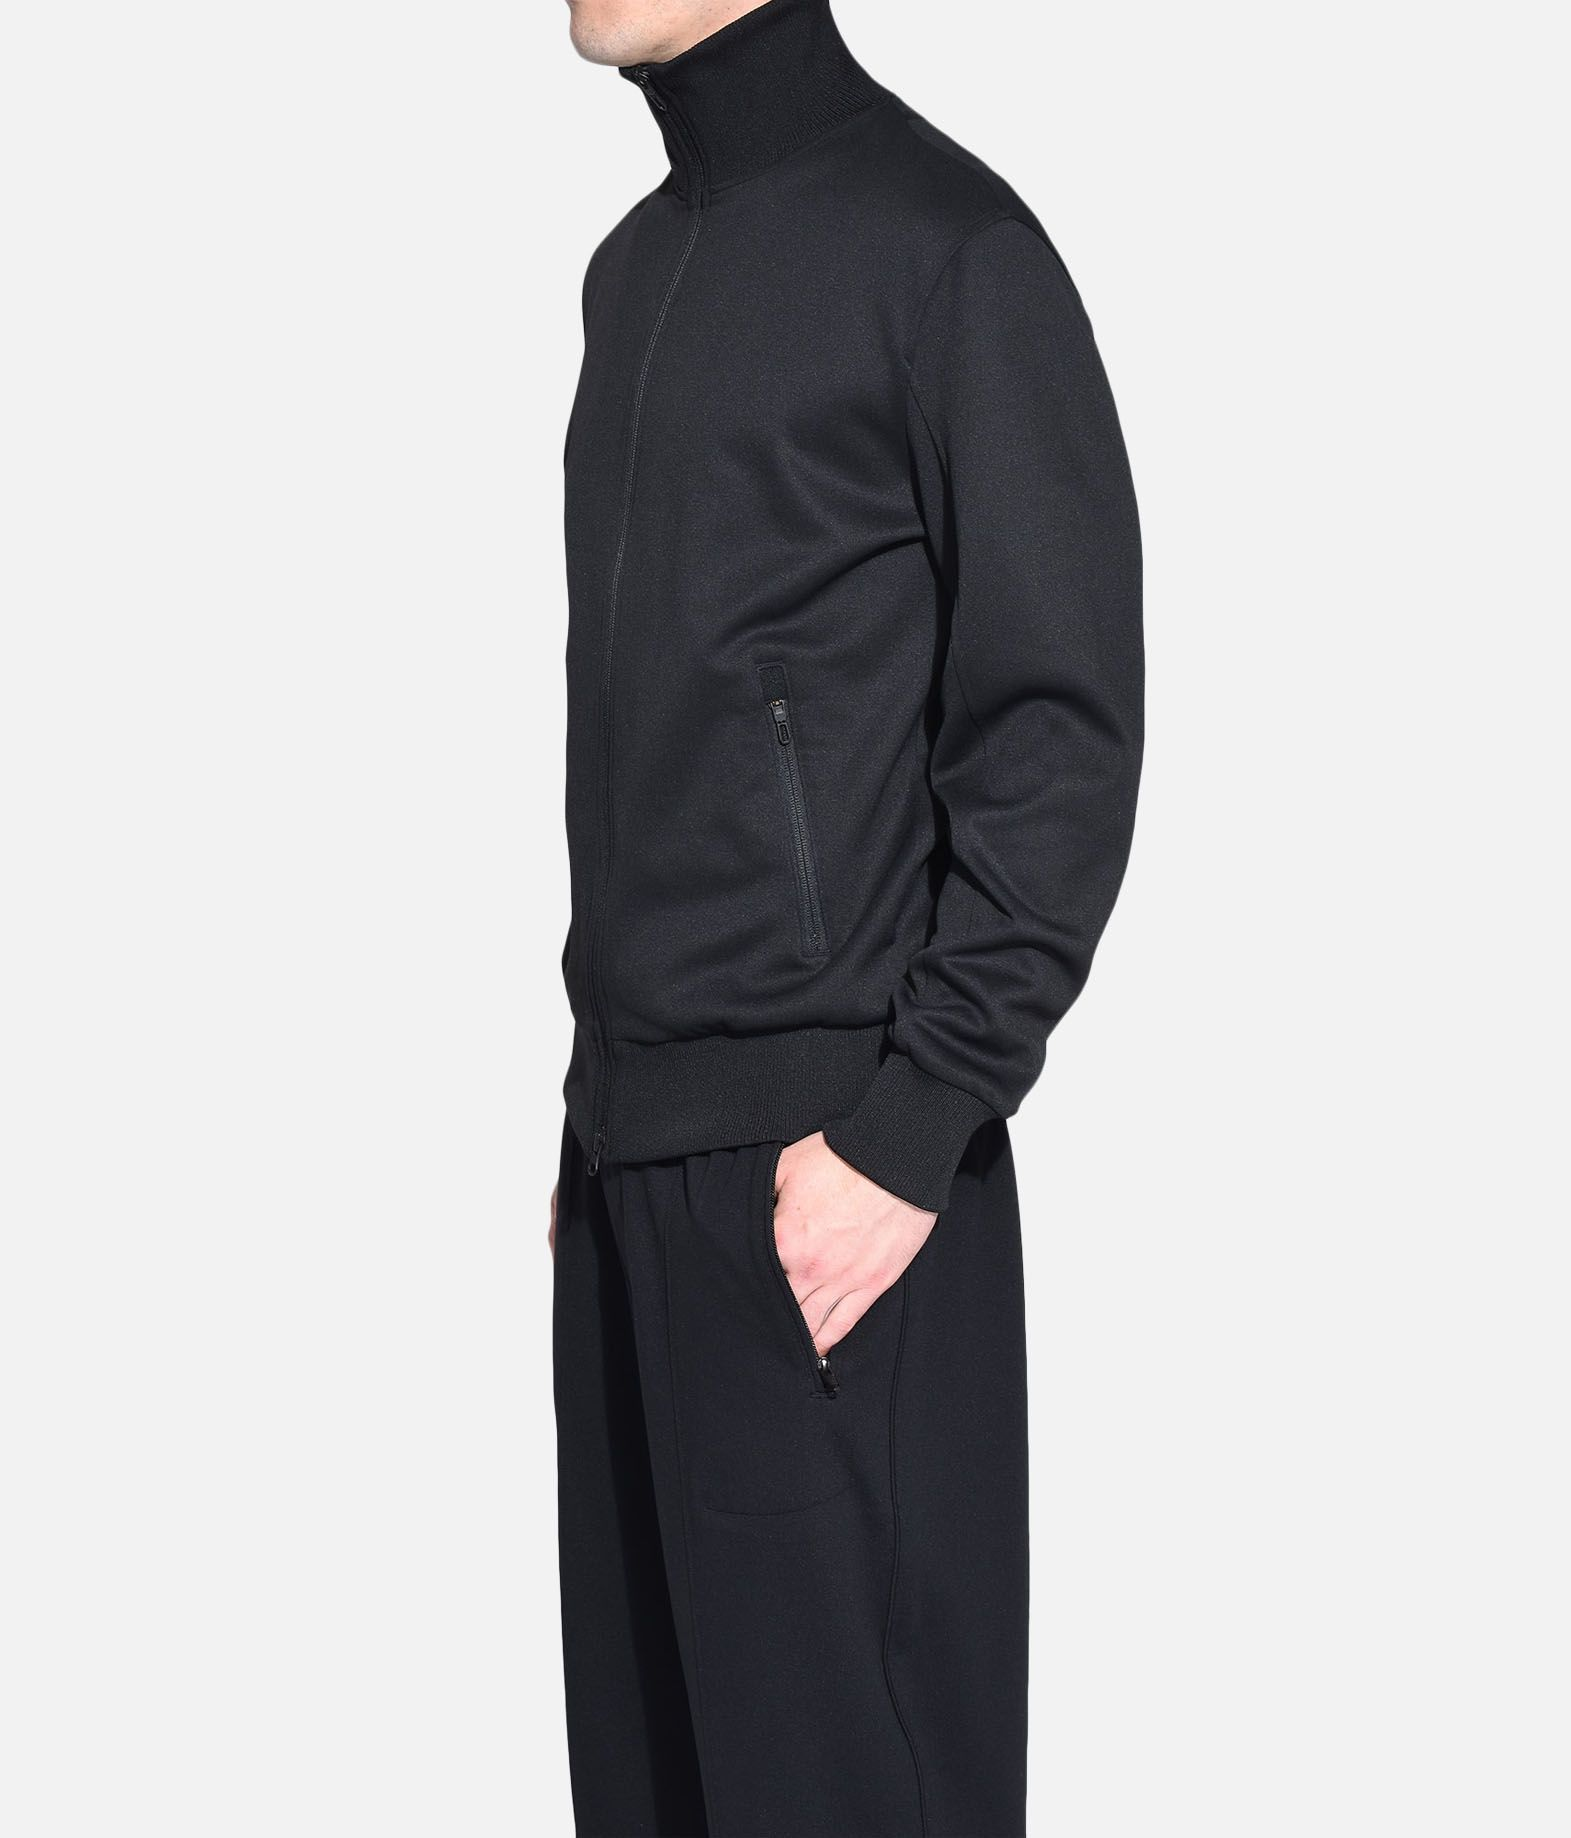 Y-3 Y-3 CLASSIC TRACK JACKET Track top メンズ e